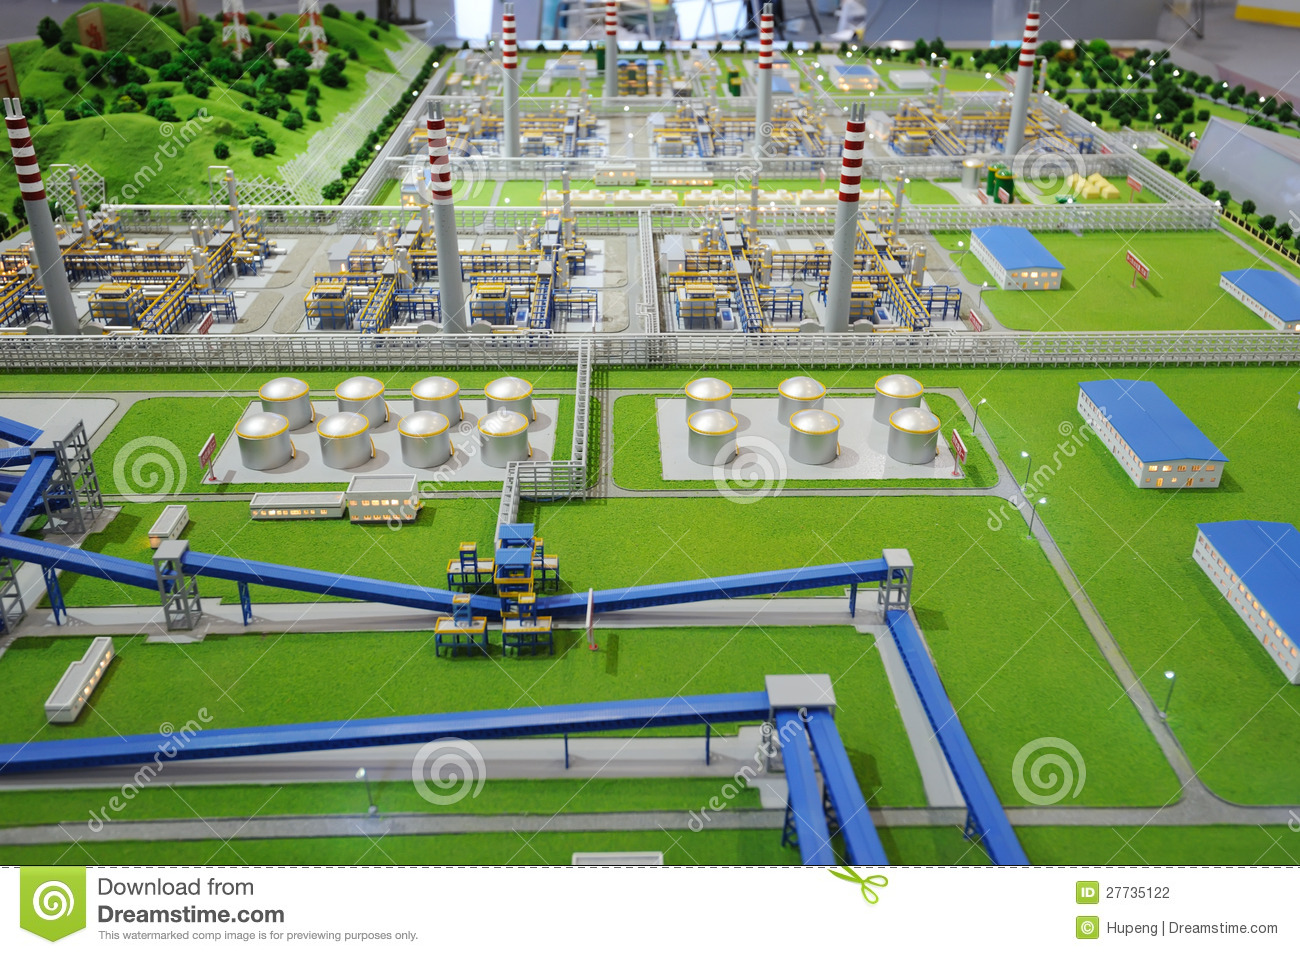 Sinopec Group Natural Gas Processing Plant Model Editorial Photography Image 27735122